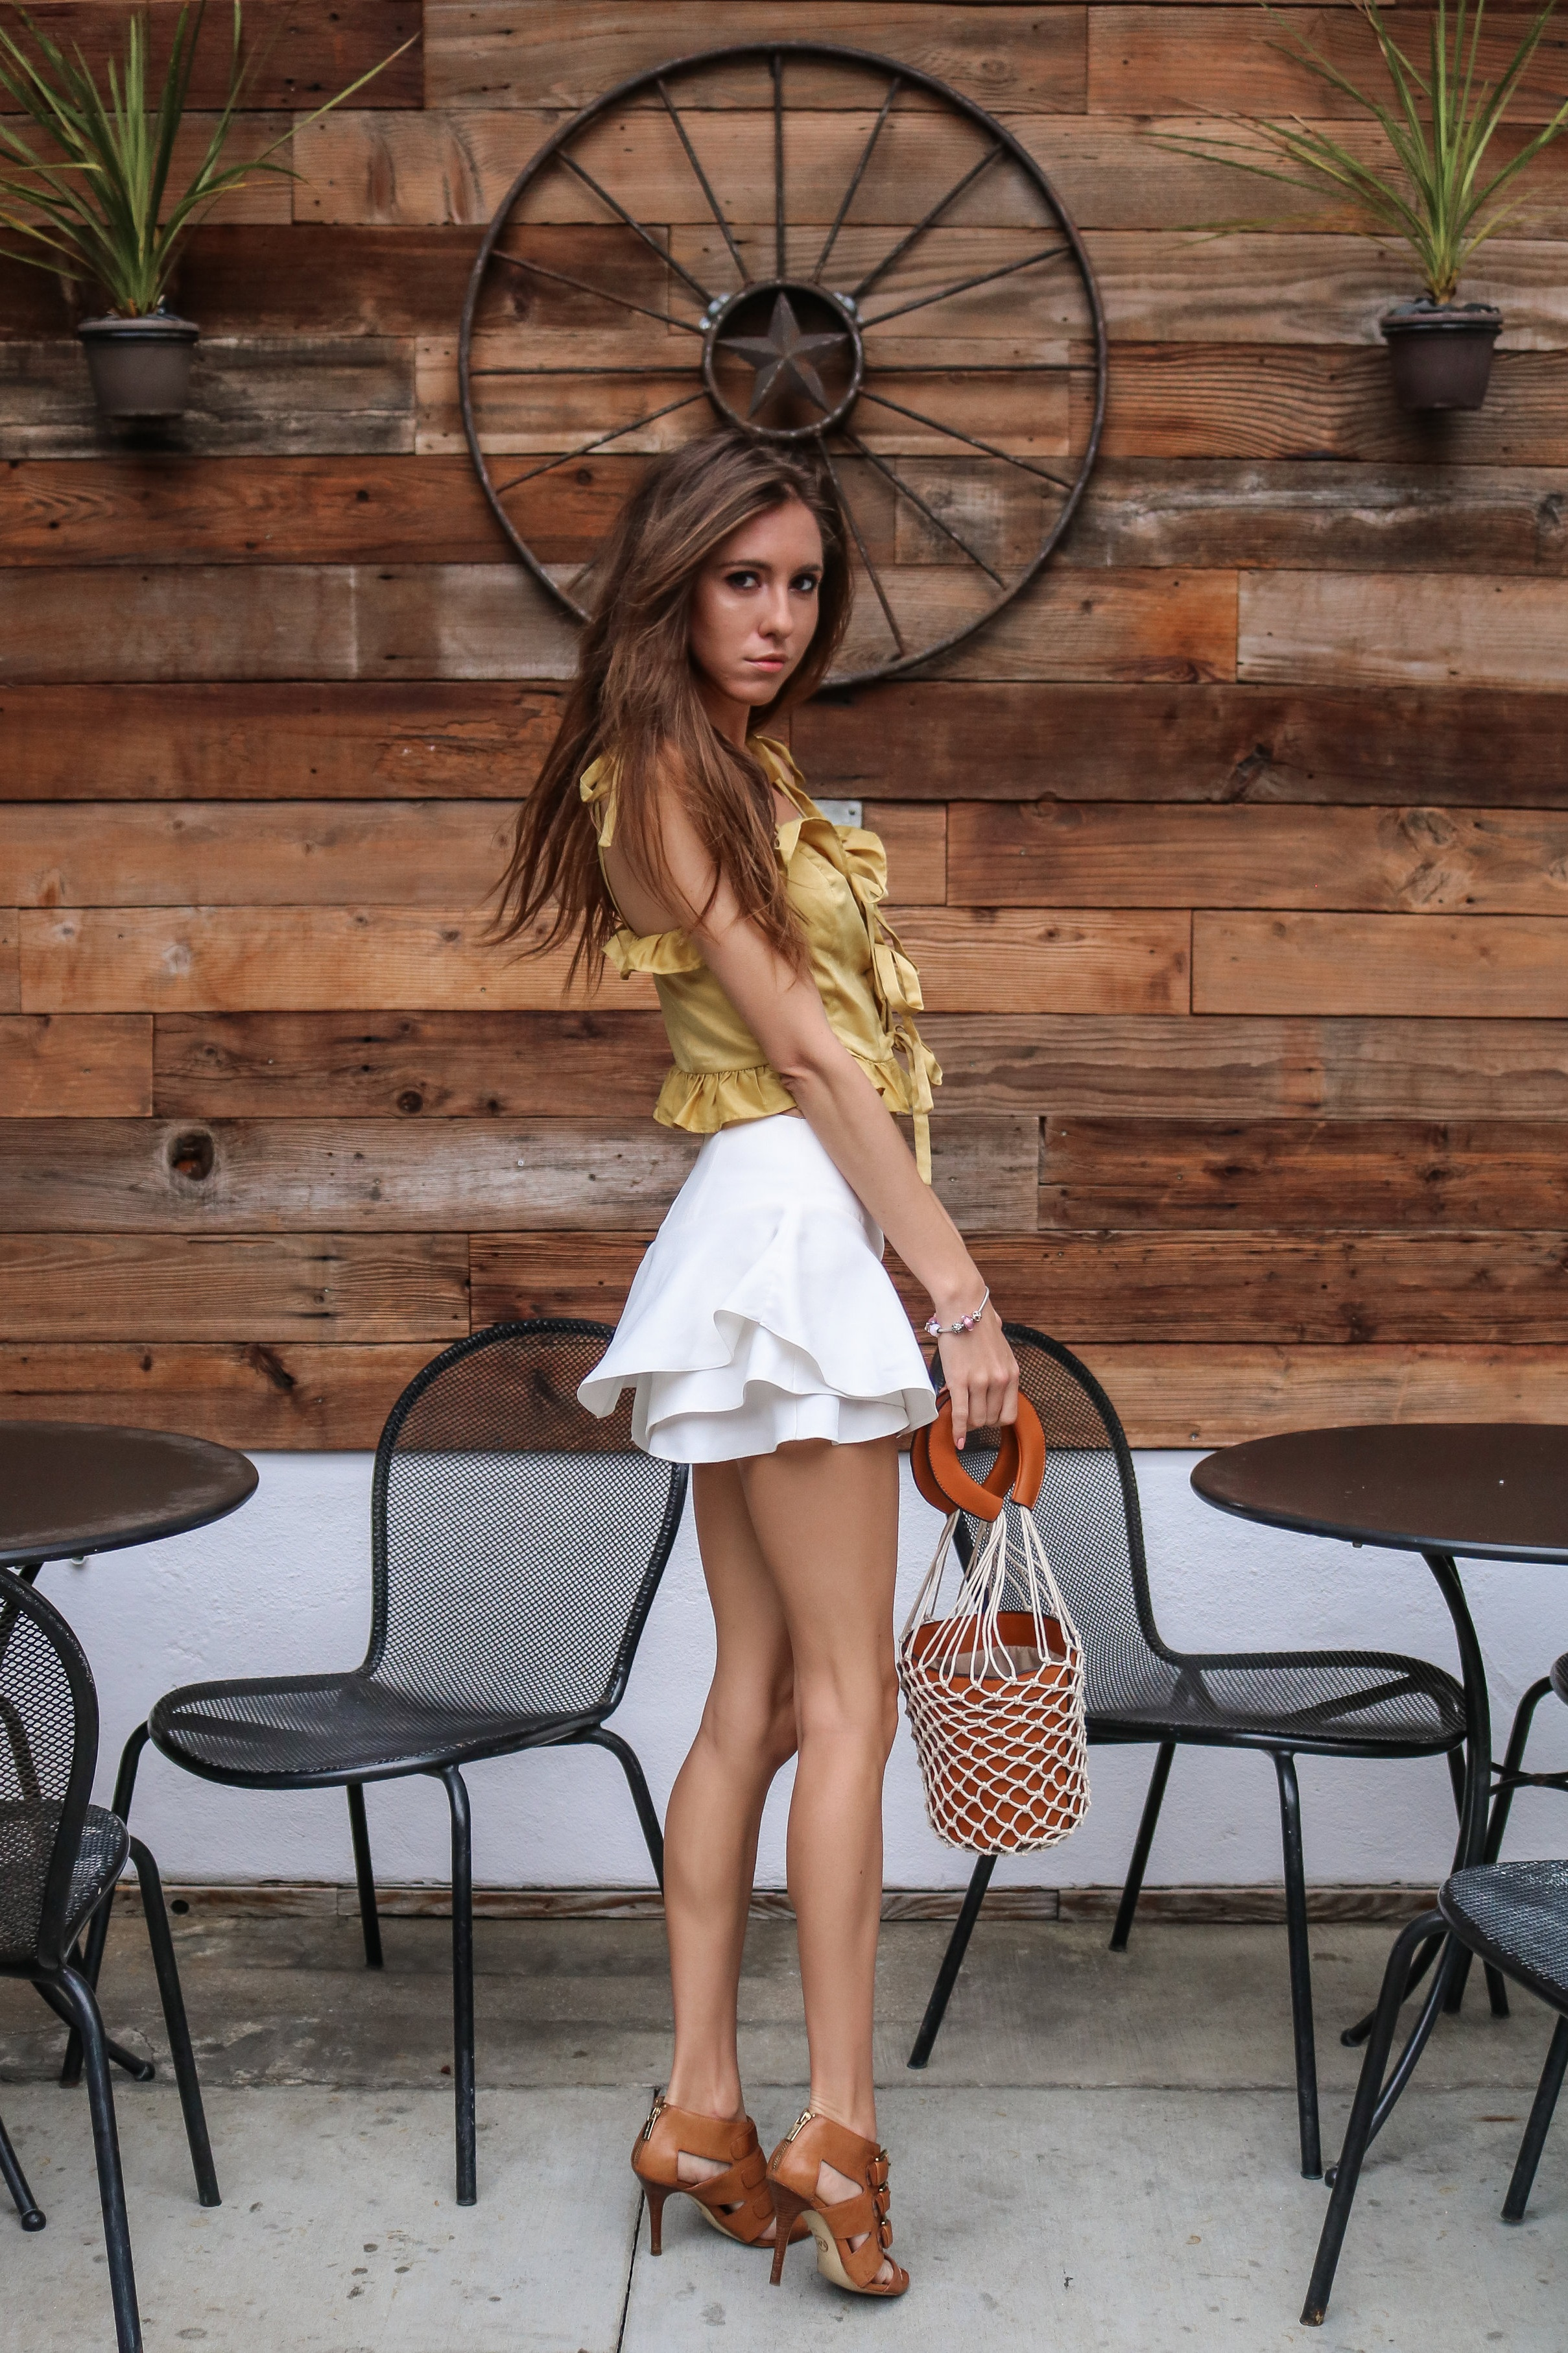 The+Hungarian+Brunette+Yellow+satin+top+and+net+bag+%2811+of+12%29.jpg